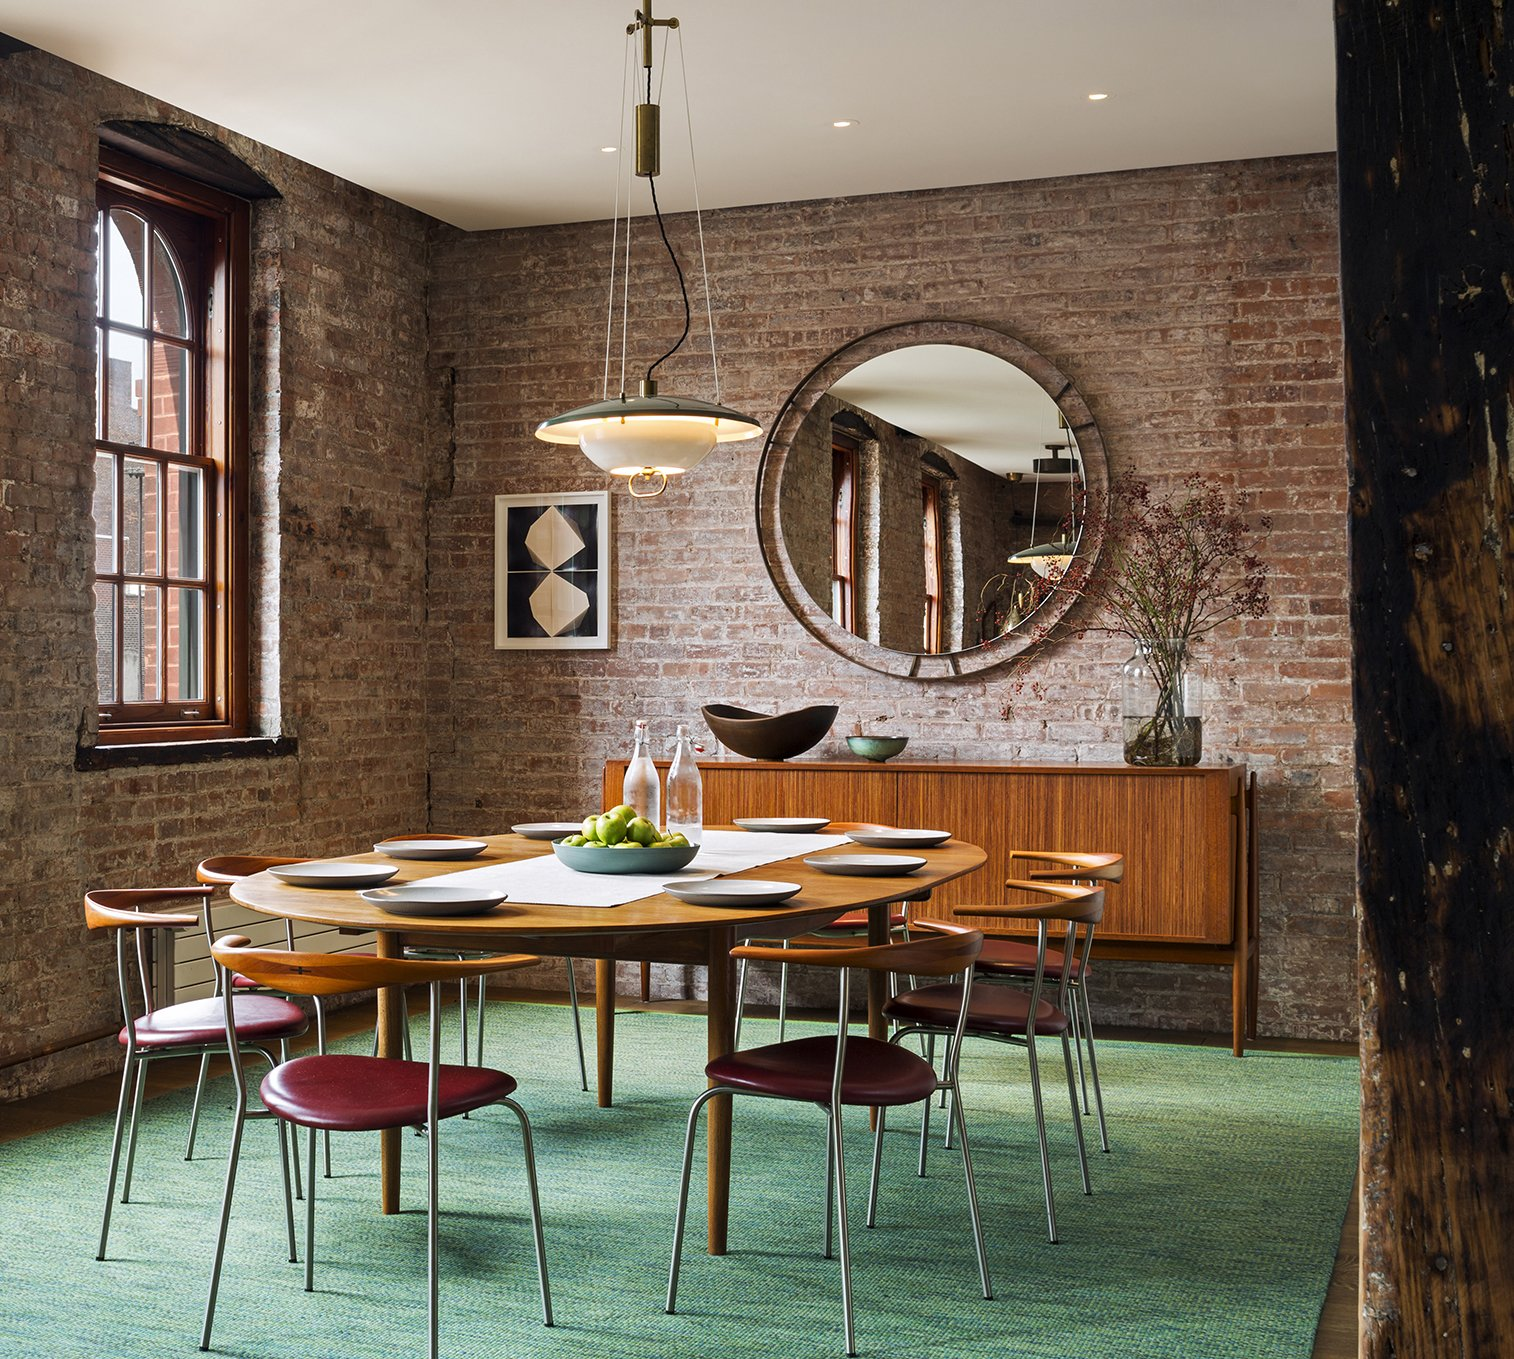 Light and open vintage furnishings contrast with the industrial character of the space.  Tribeca Loft by Andrew Franz Architect PLLC